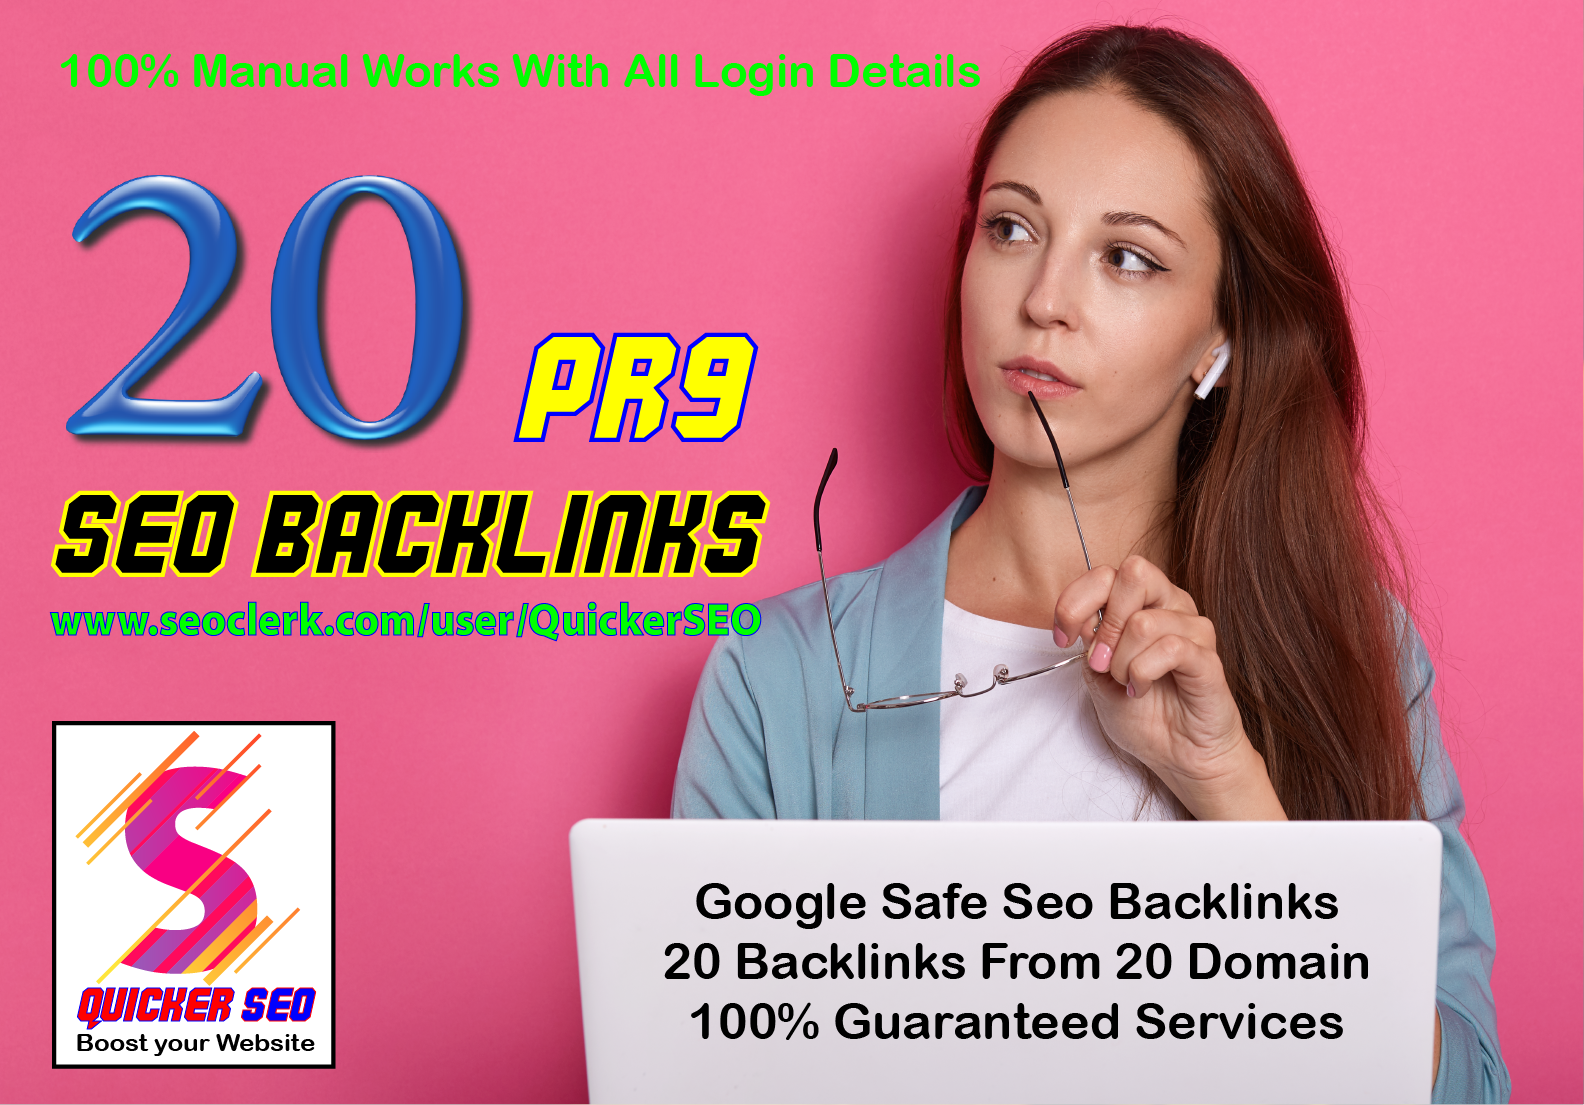 20 Pr9 - 90+ DA High Quality SEO Domain Authority Permanent Backlinks - Boost Your Google Ranking